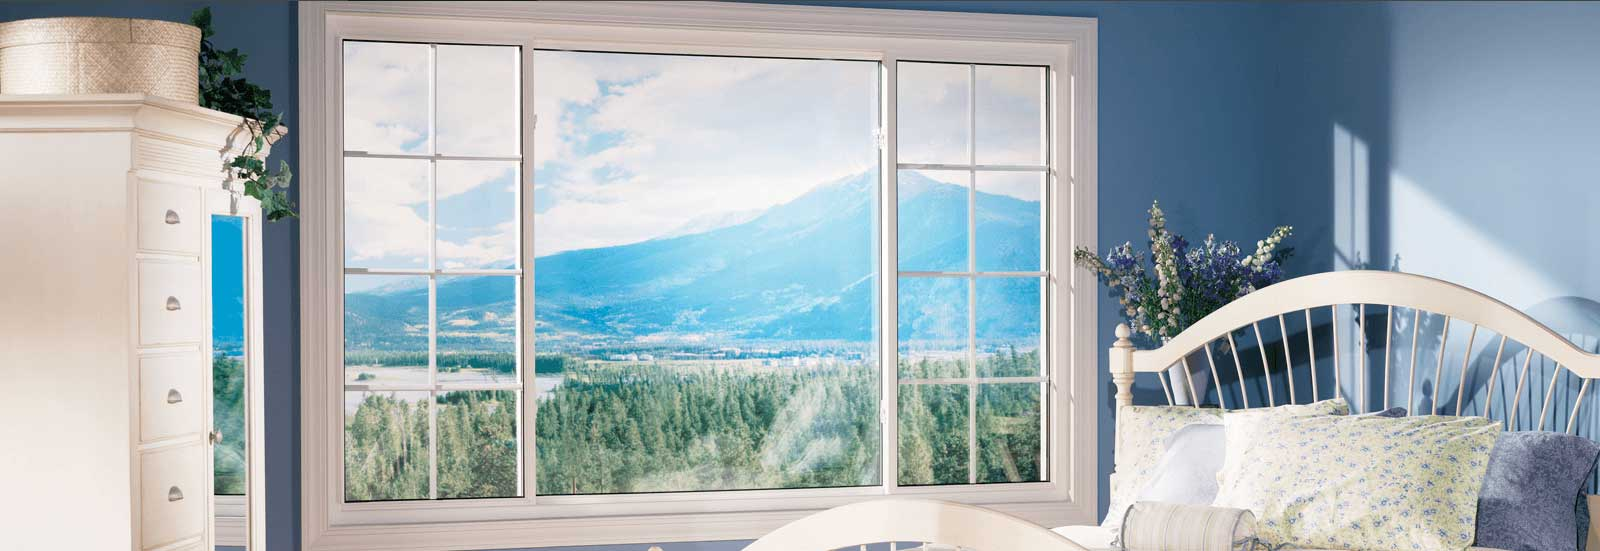 White Sliding Windows